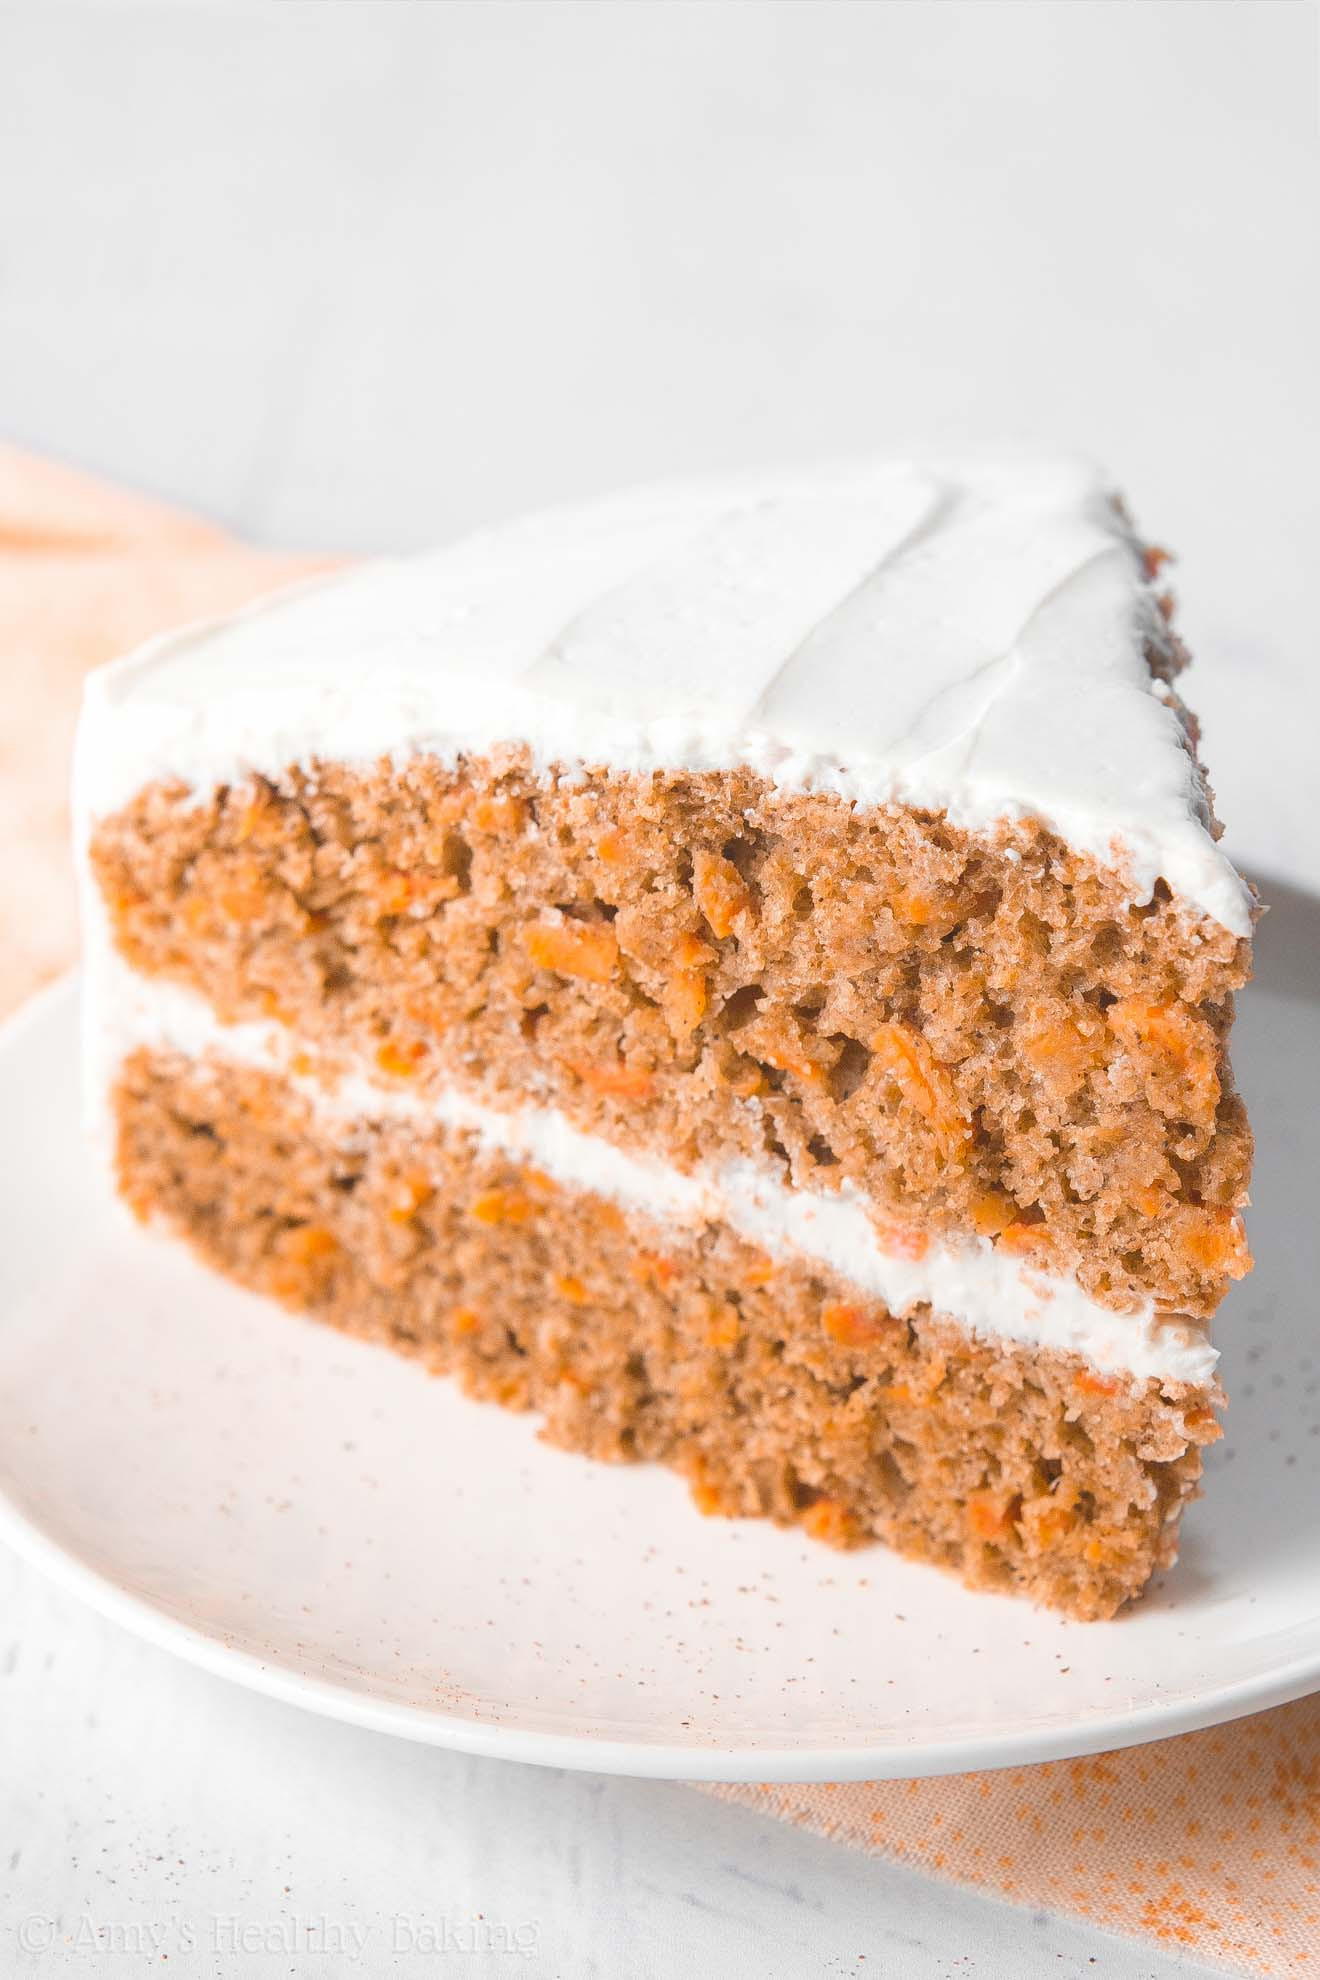 Healthy Carrot Cake Recipe  The Ultimate Healthy Carrot Cake With a Step by Step